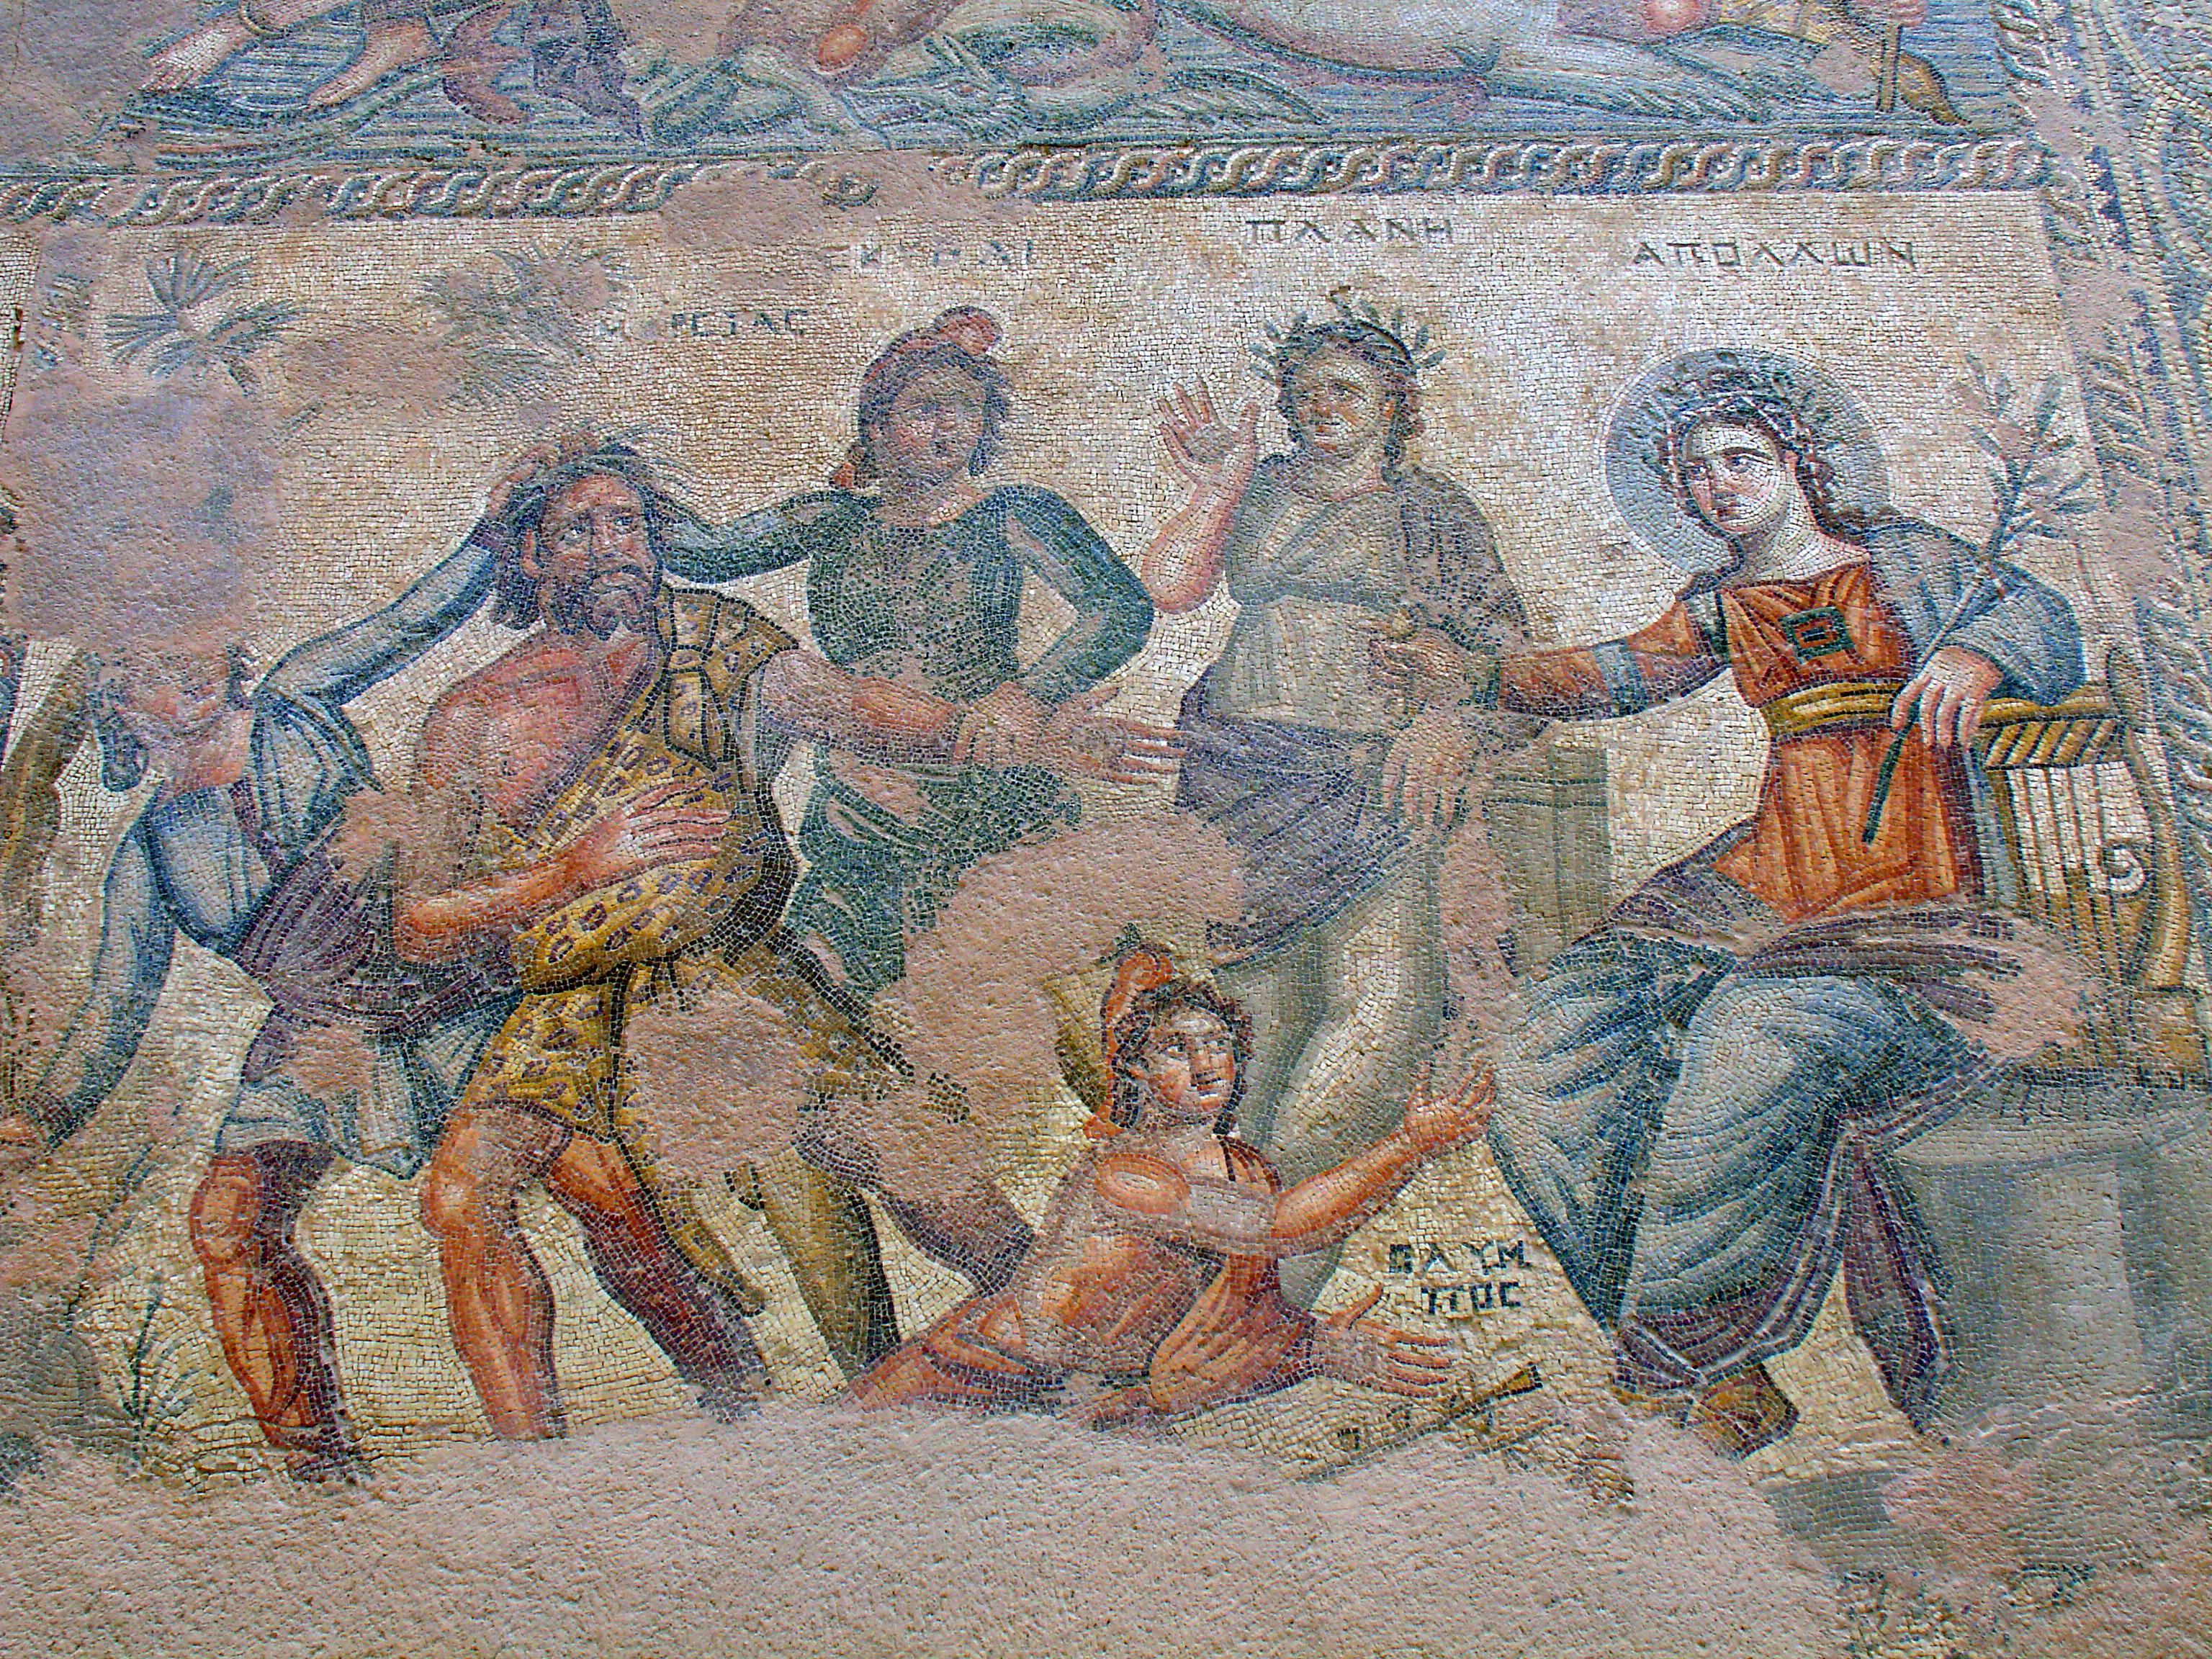 File:Houses of Dionysos Mosaic, Paphos.jpg - Wikimedia Commons